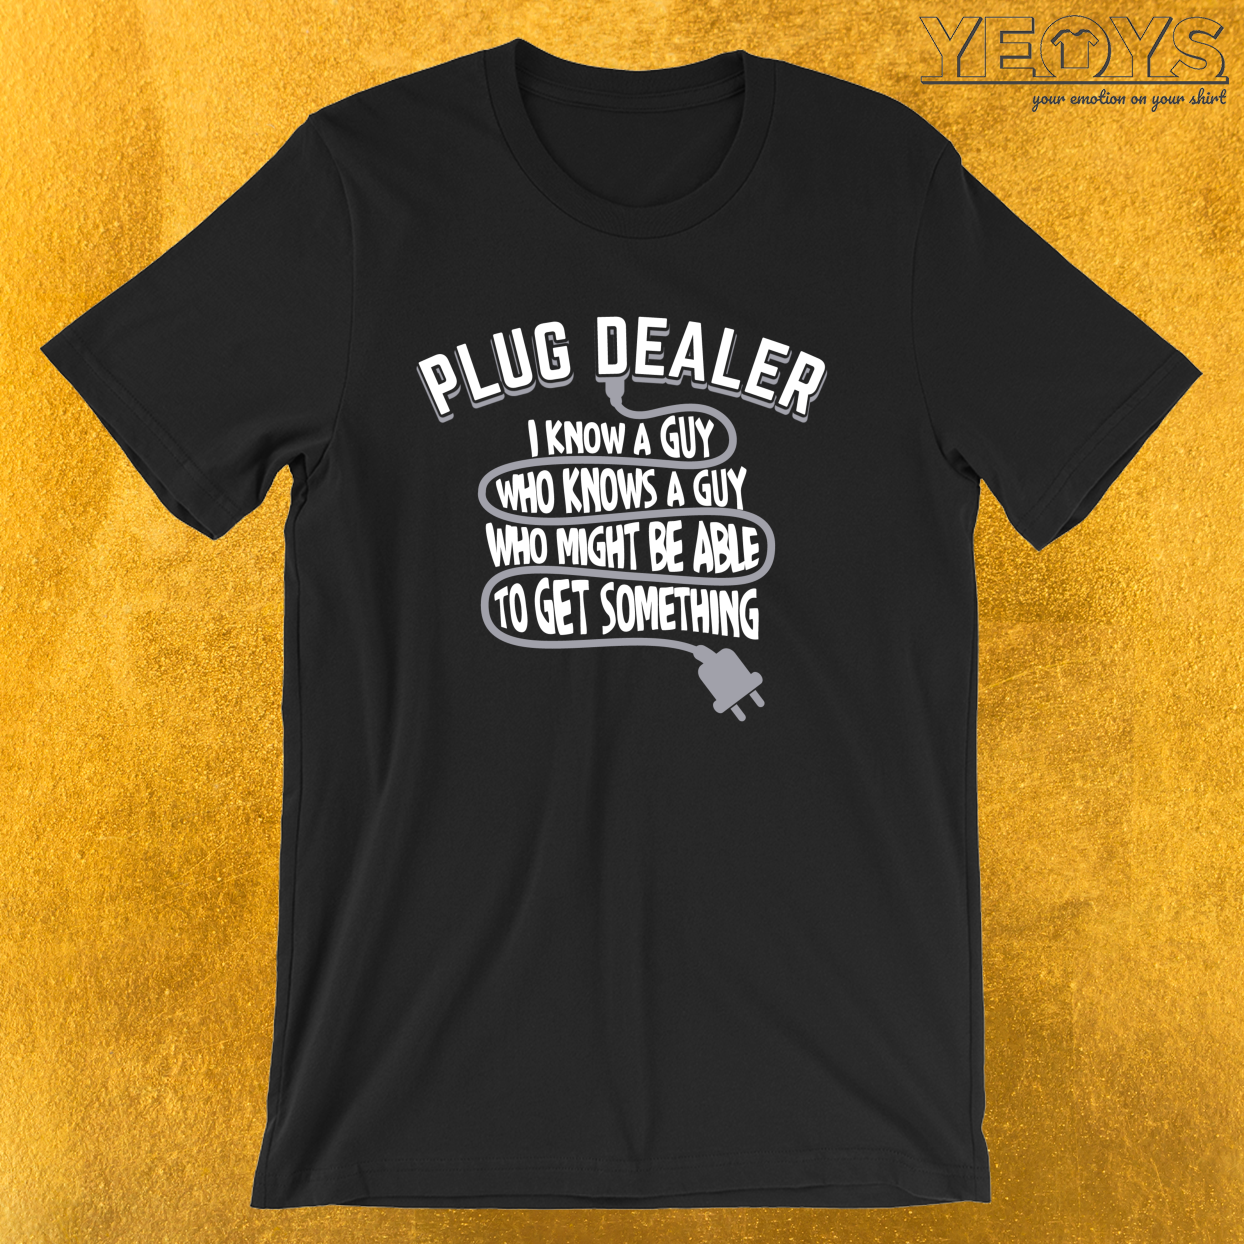 Plug Dealer Able To Get Something – Funny Social Media Tee